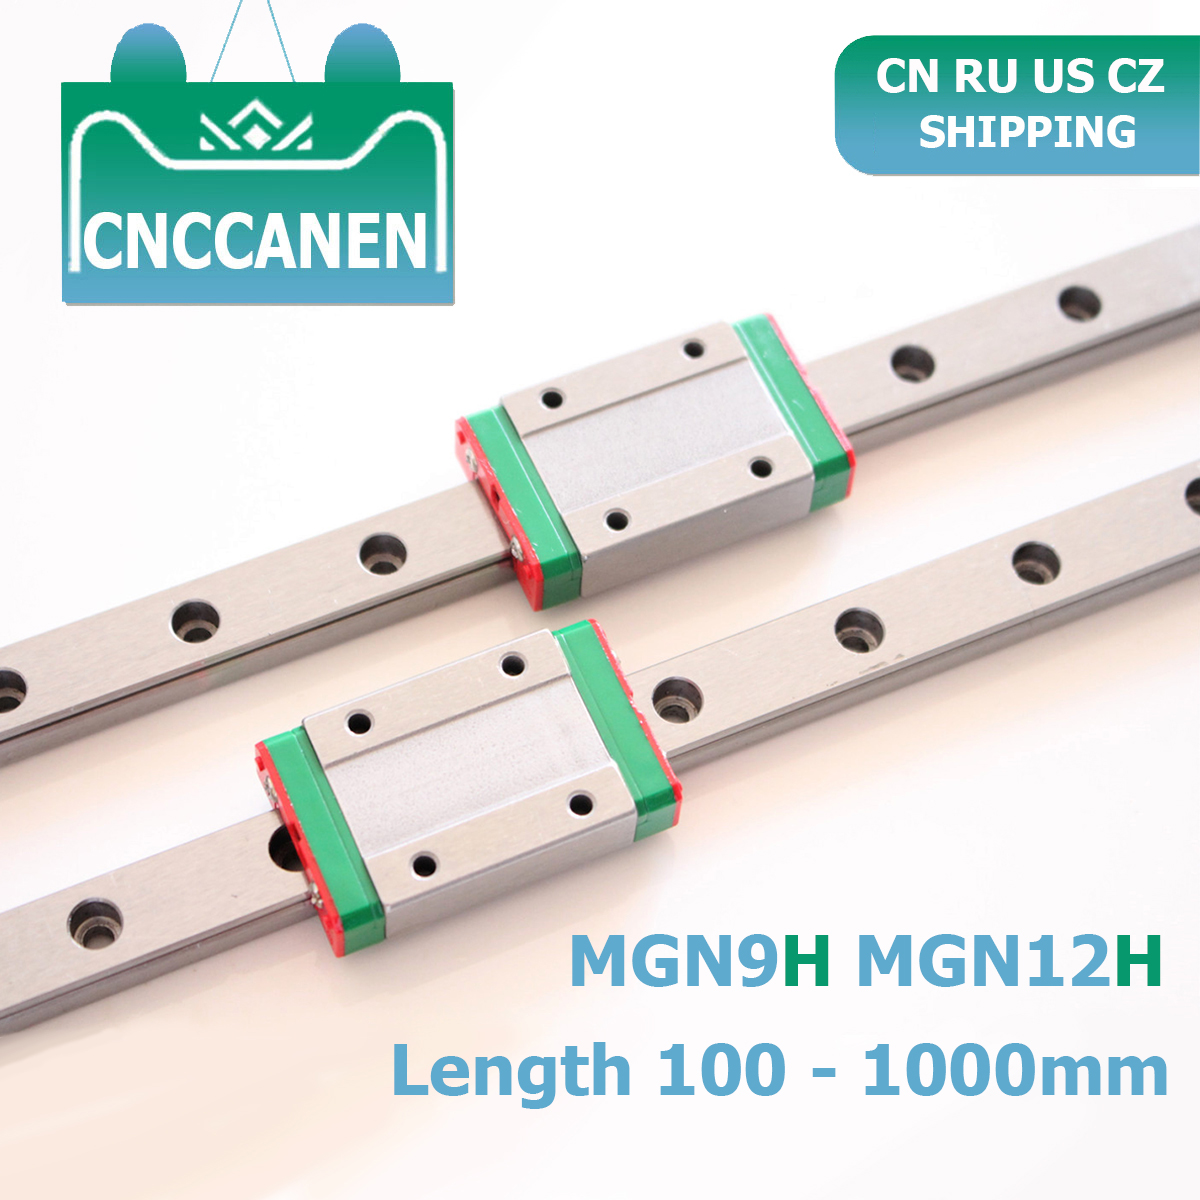 CNC Parts MGN9 MGN12 100 - 1000mm Miniature Linear Rail Slide 2PCS MGN Linear Guide + 2PCS MGN9H Or MGN12H Carriage 3D Printer